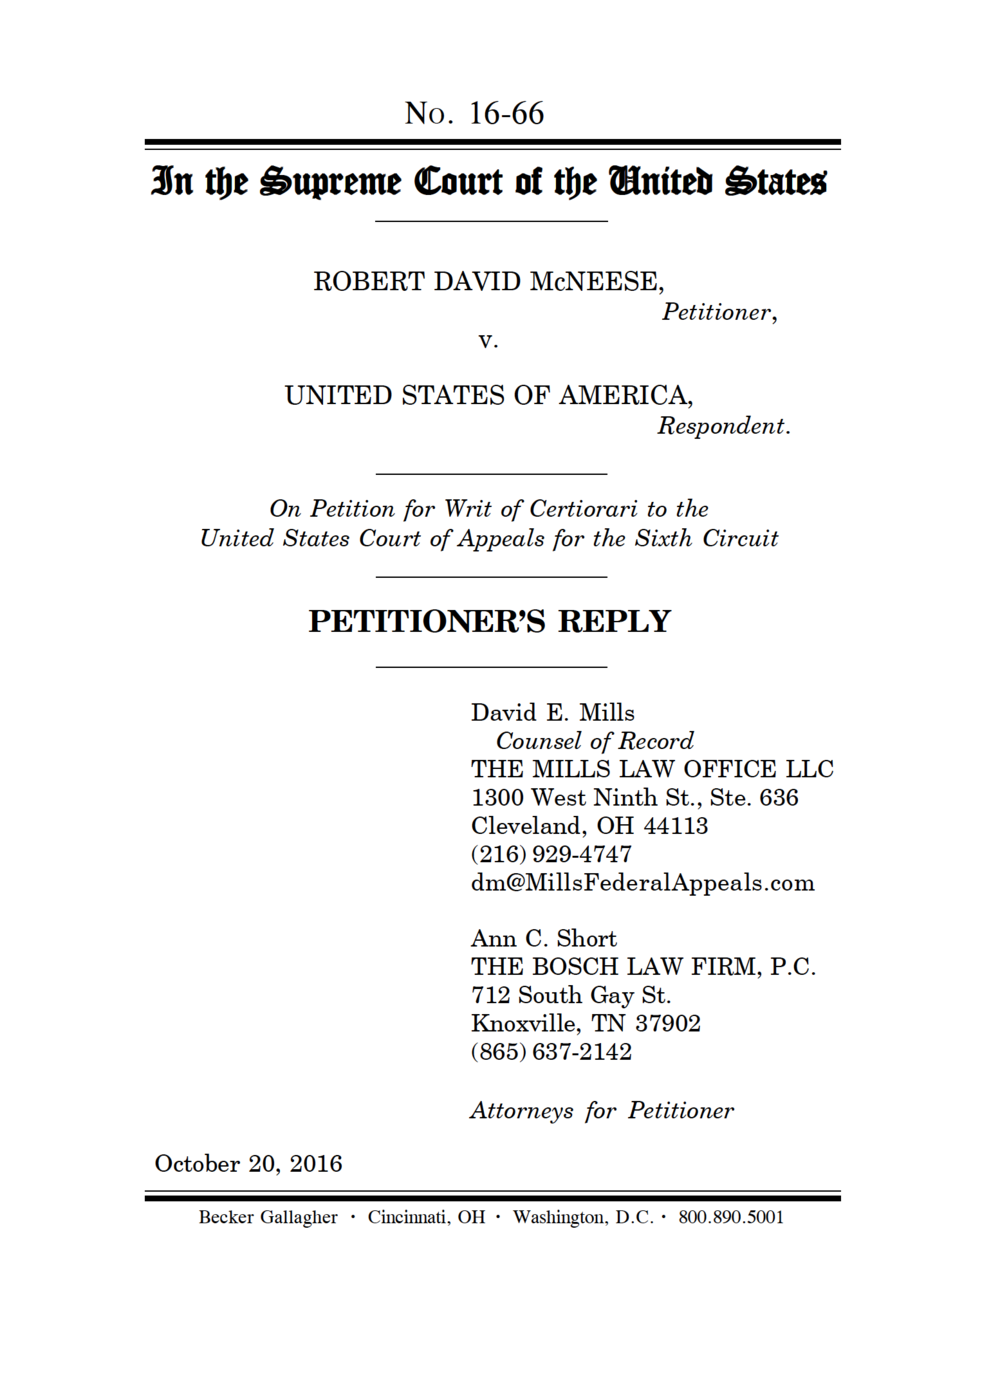 Us Supreme Court Denies Review In >> Do You Have A Vehicle Problem For Supreme Court Review When The